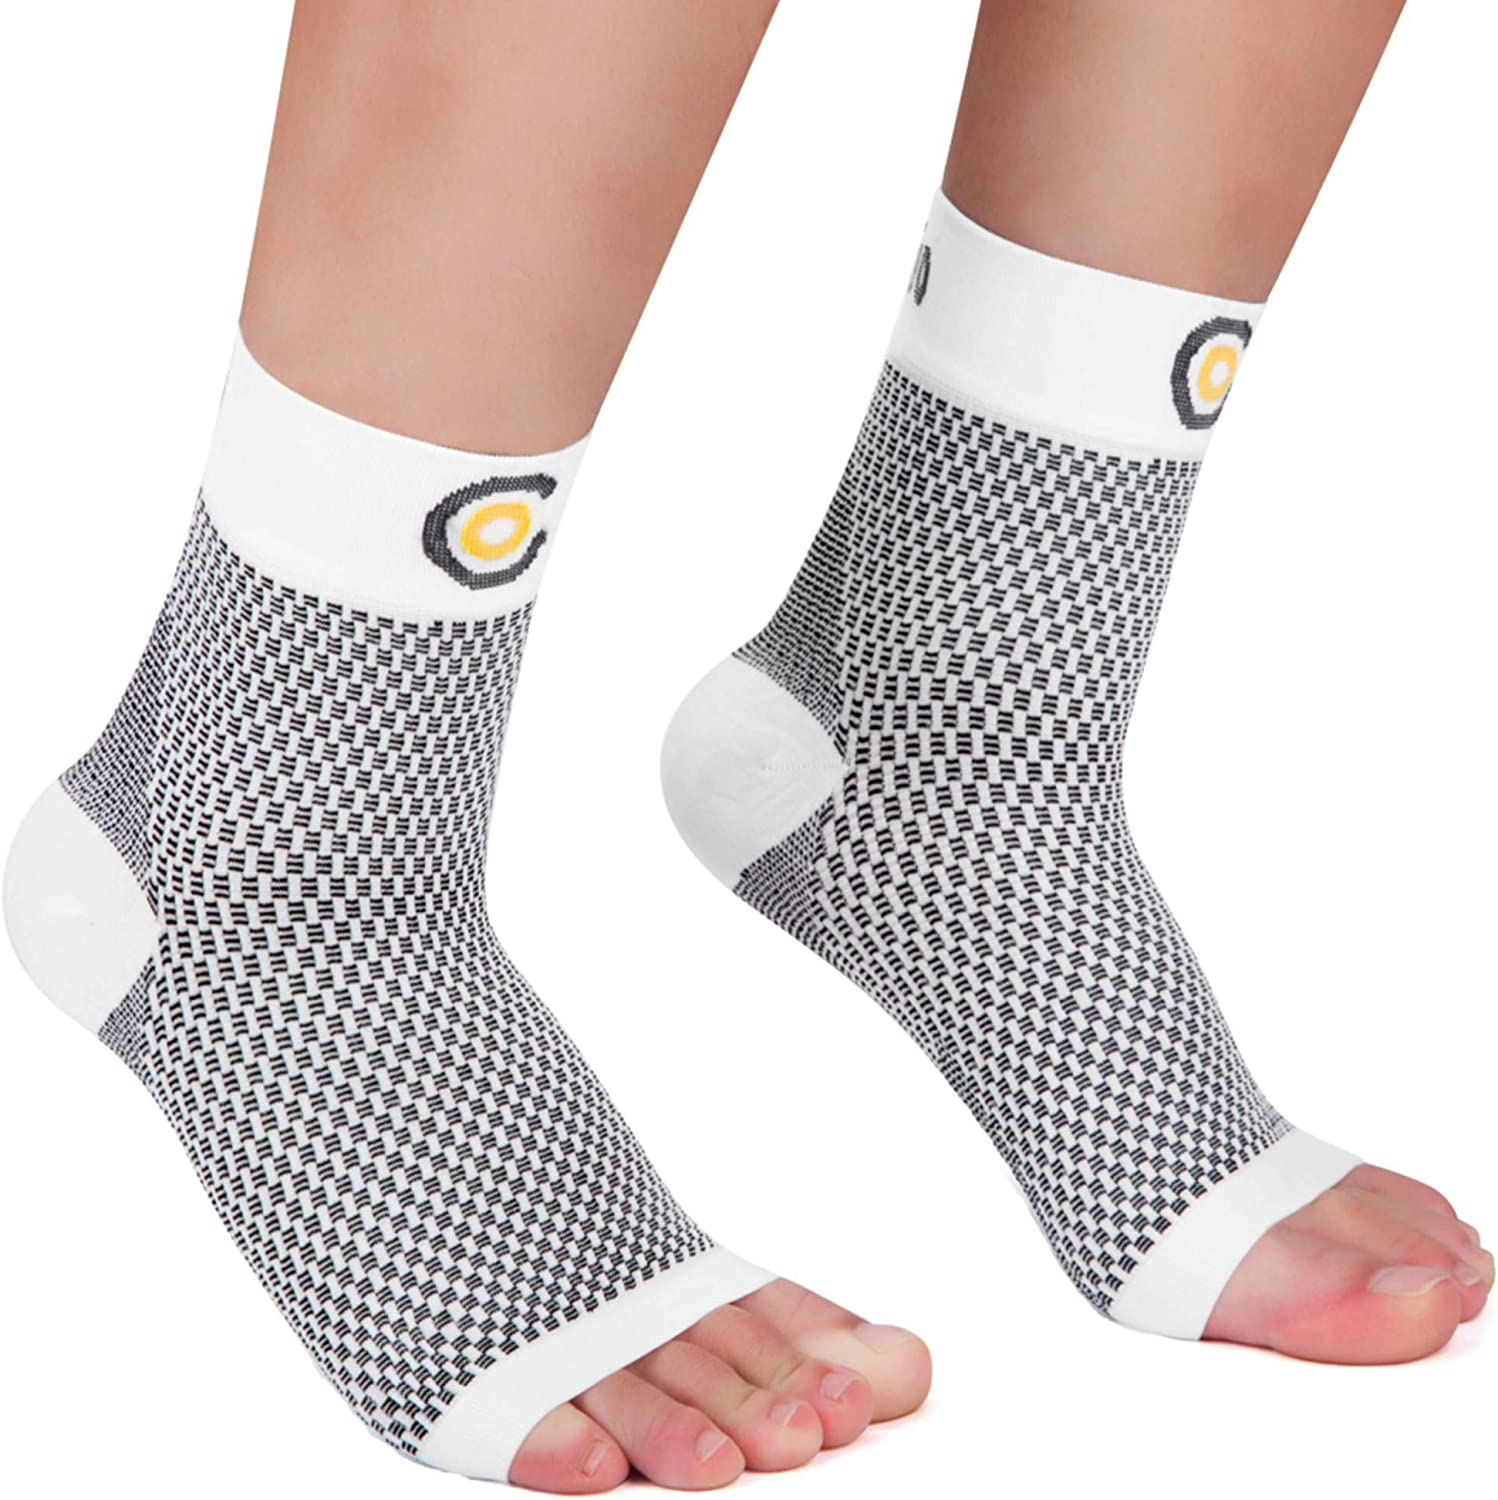 CAMBIVO Cheap bargain Plantar Fasciitis Compression Socks Men Women for 2 and 4 years warranty